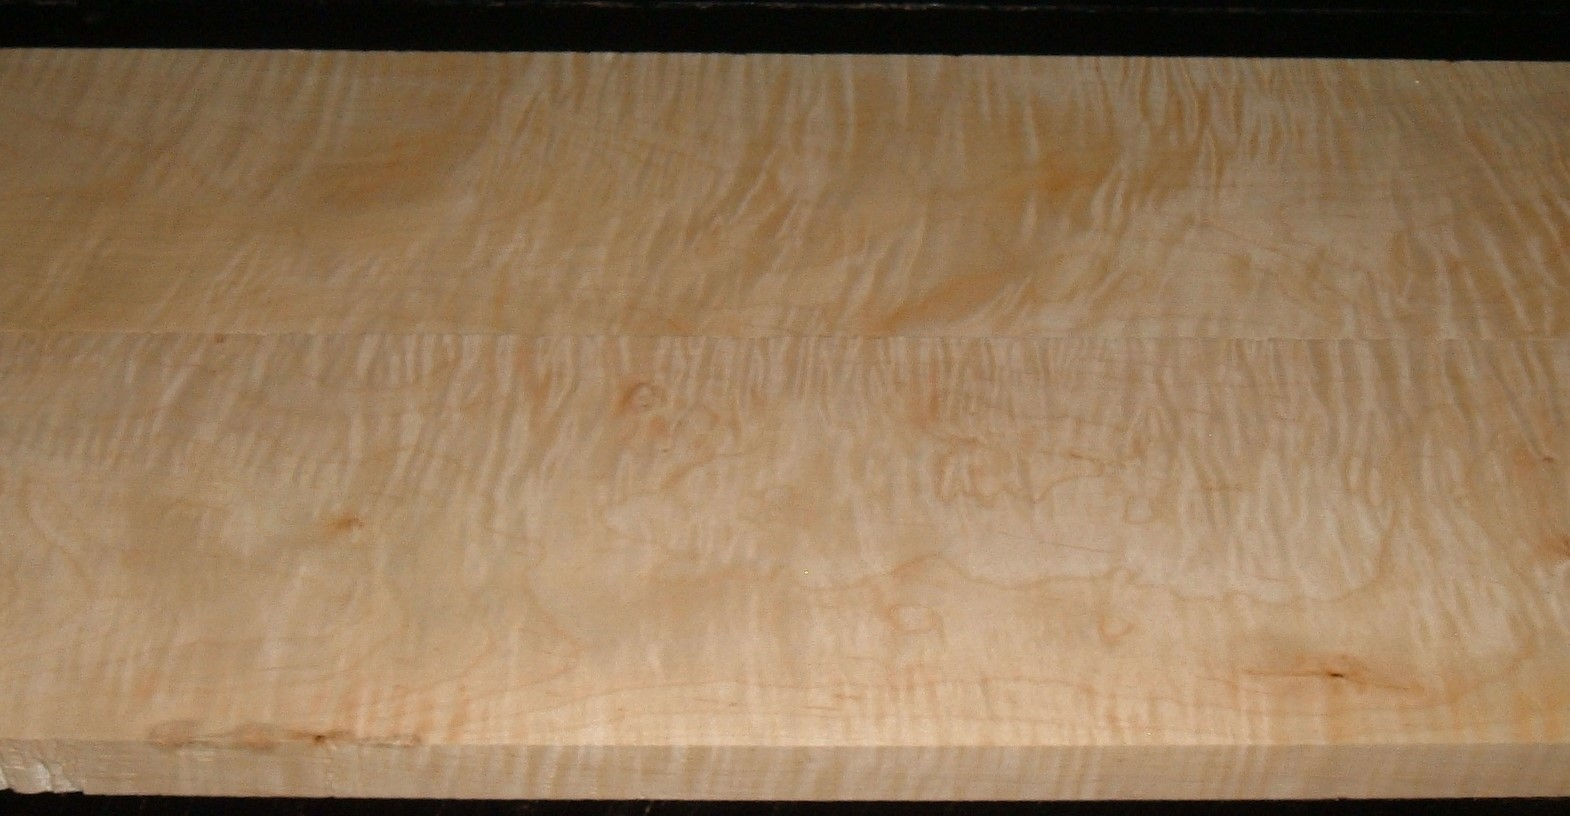 M2006-507JJ, 2bd, 1x7-3/8x47, 1x7-4x47, 4/4 Curly Tiger Maple